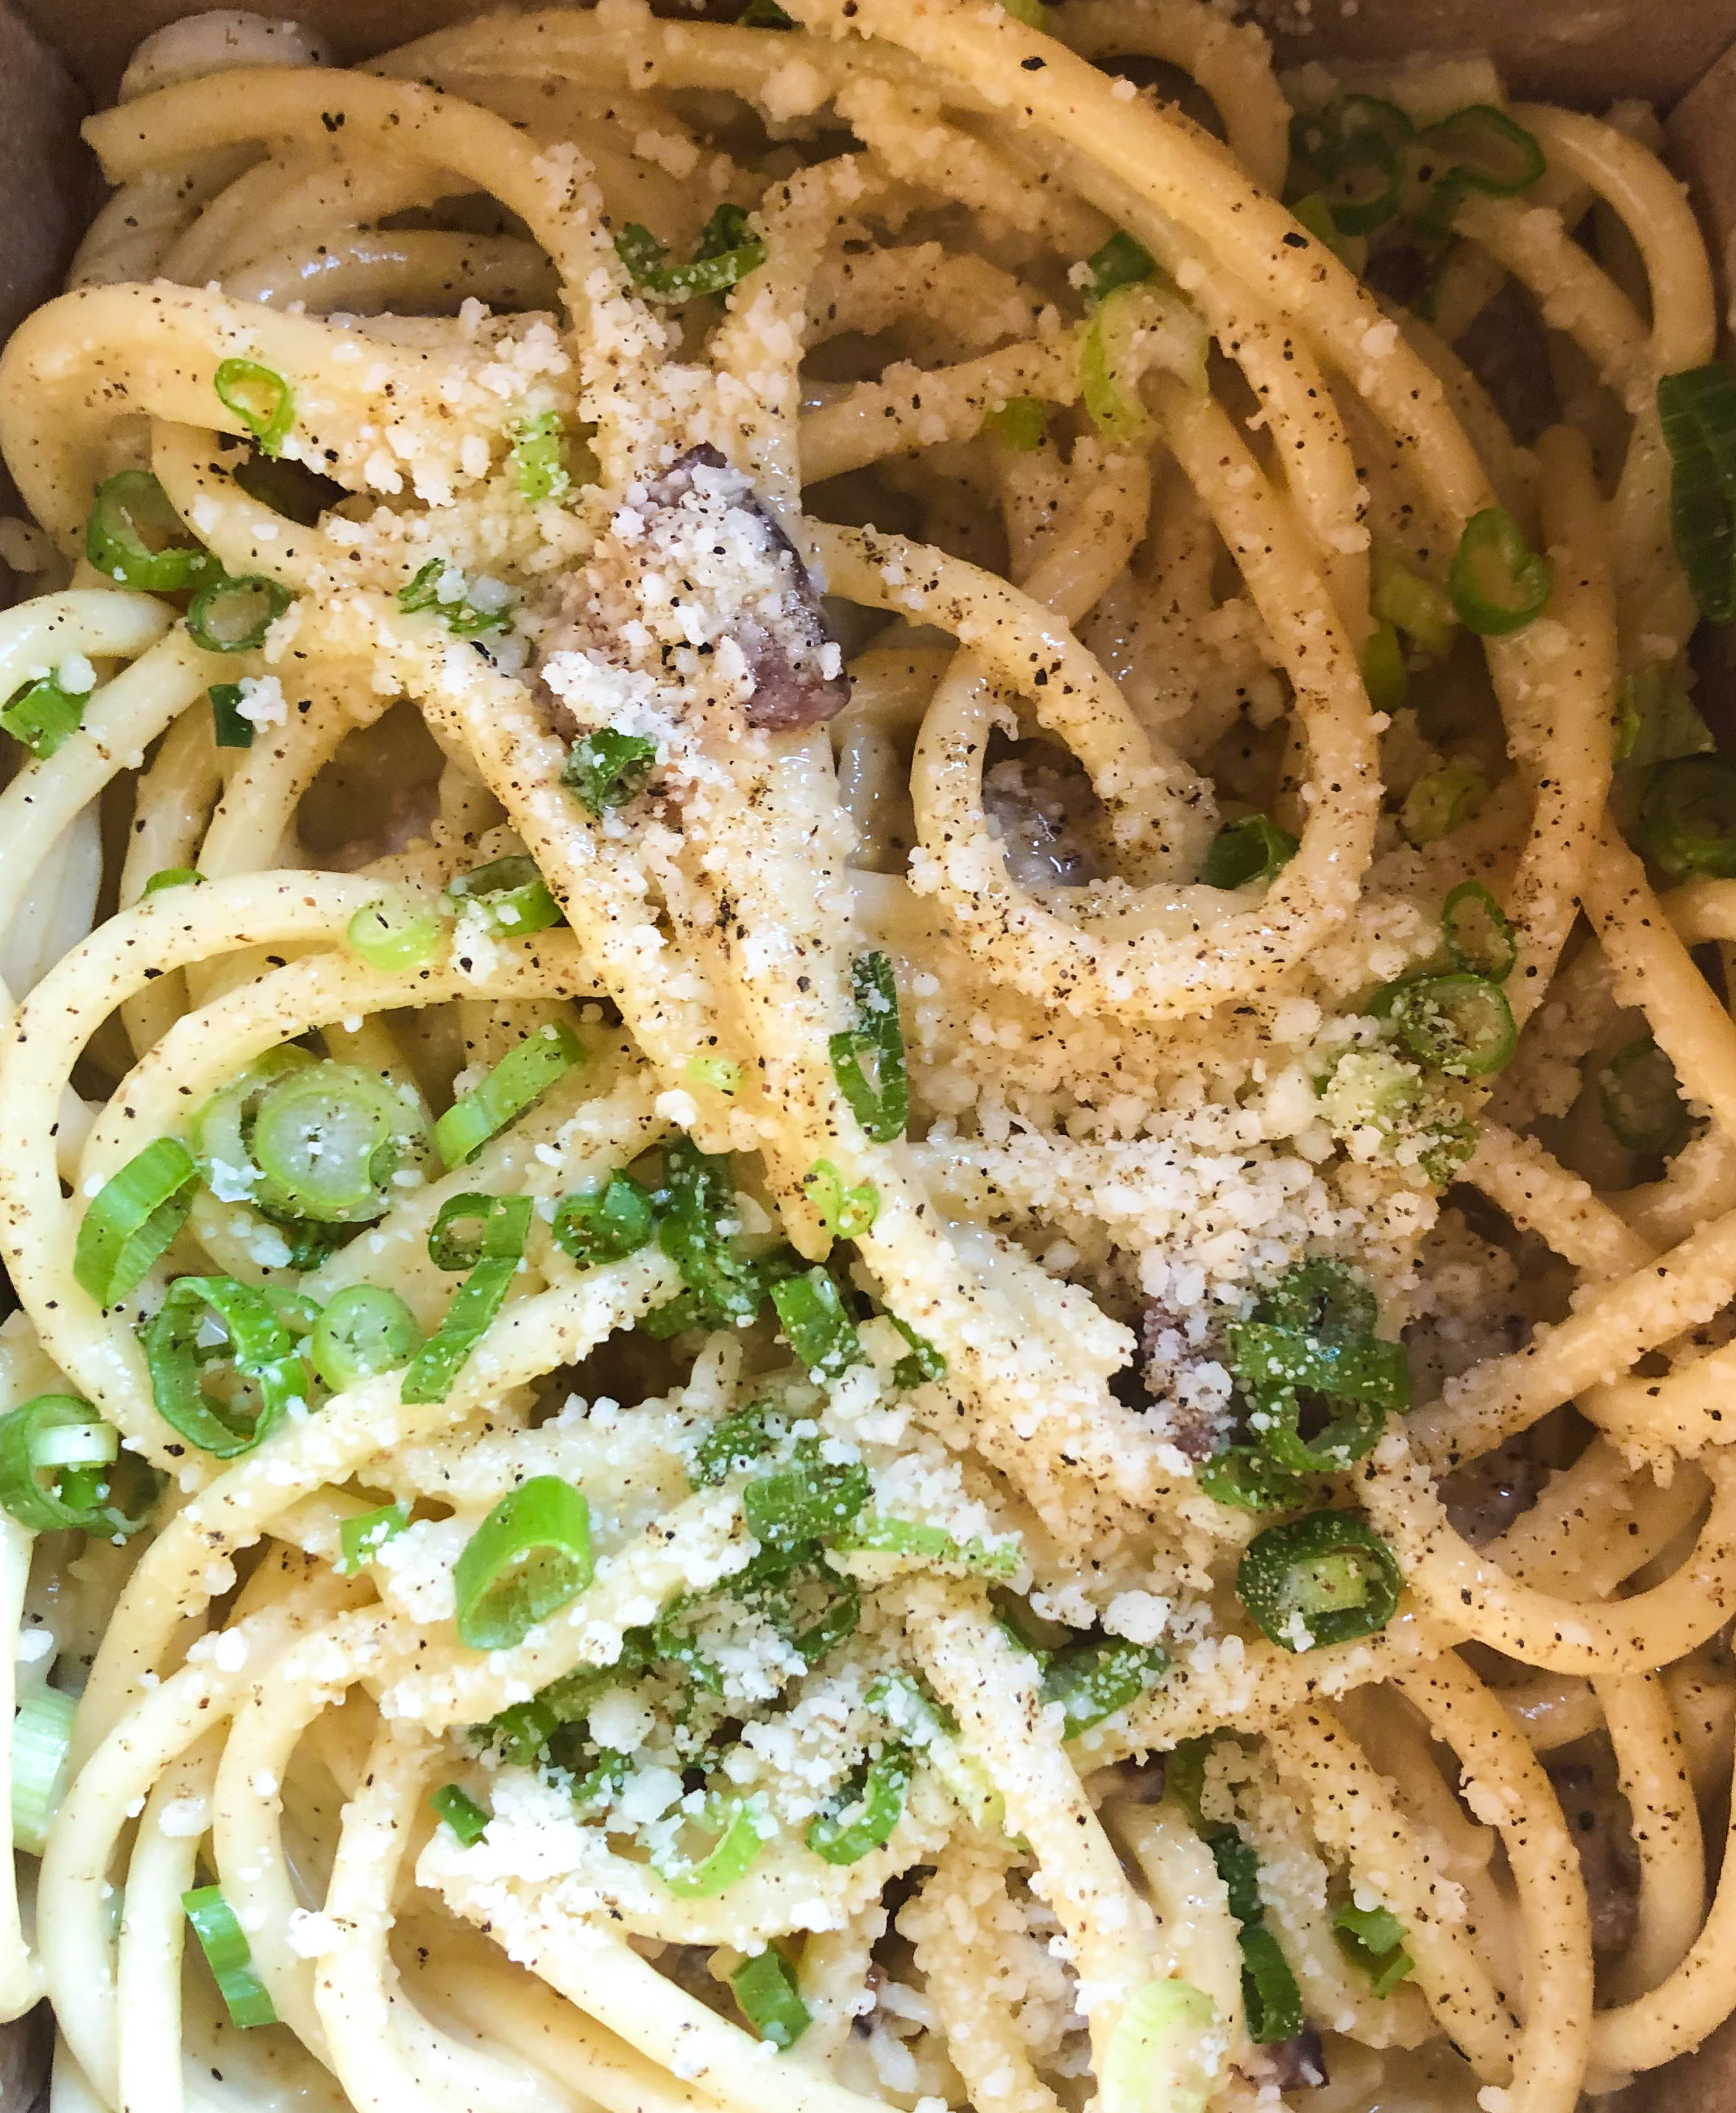 A close-up of tangles of pasta with shaved cheese and green onions at L'Unico